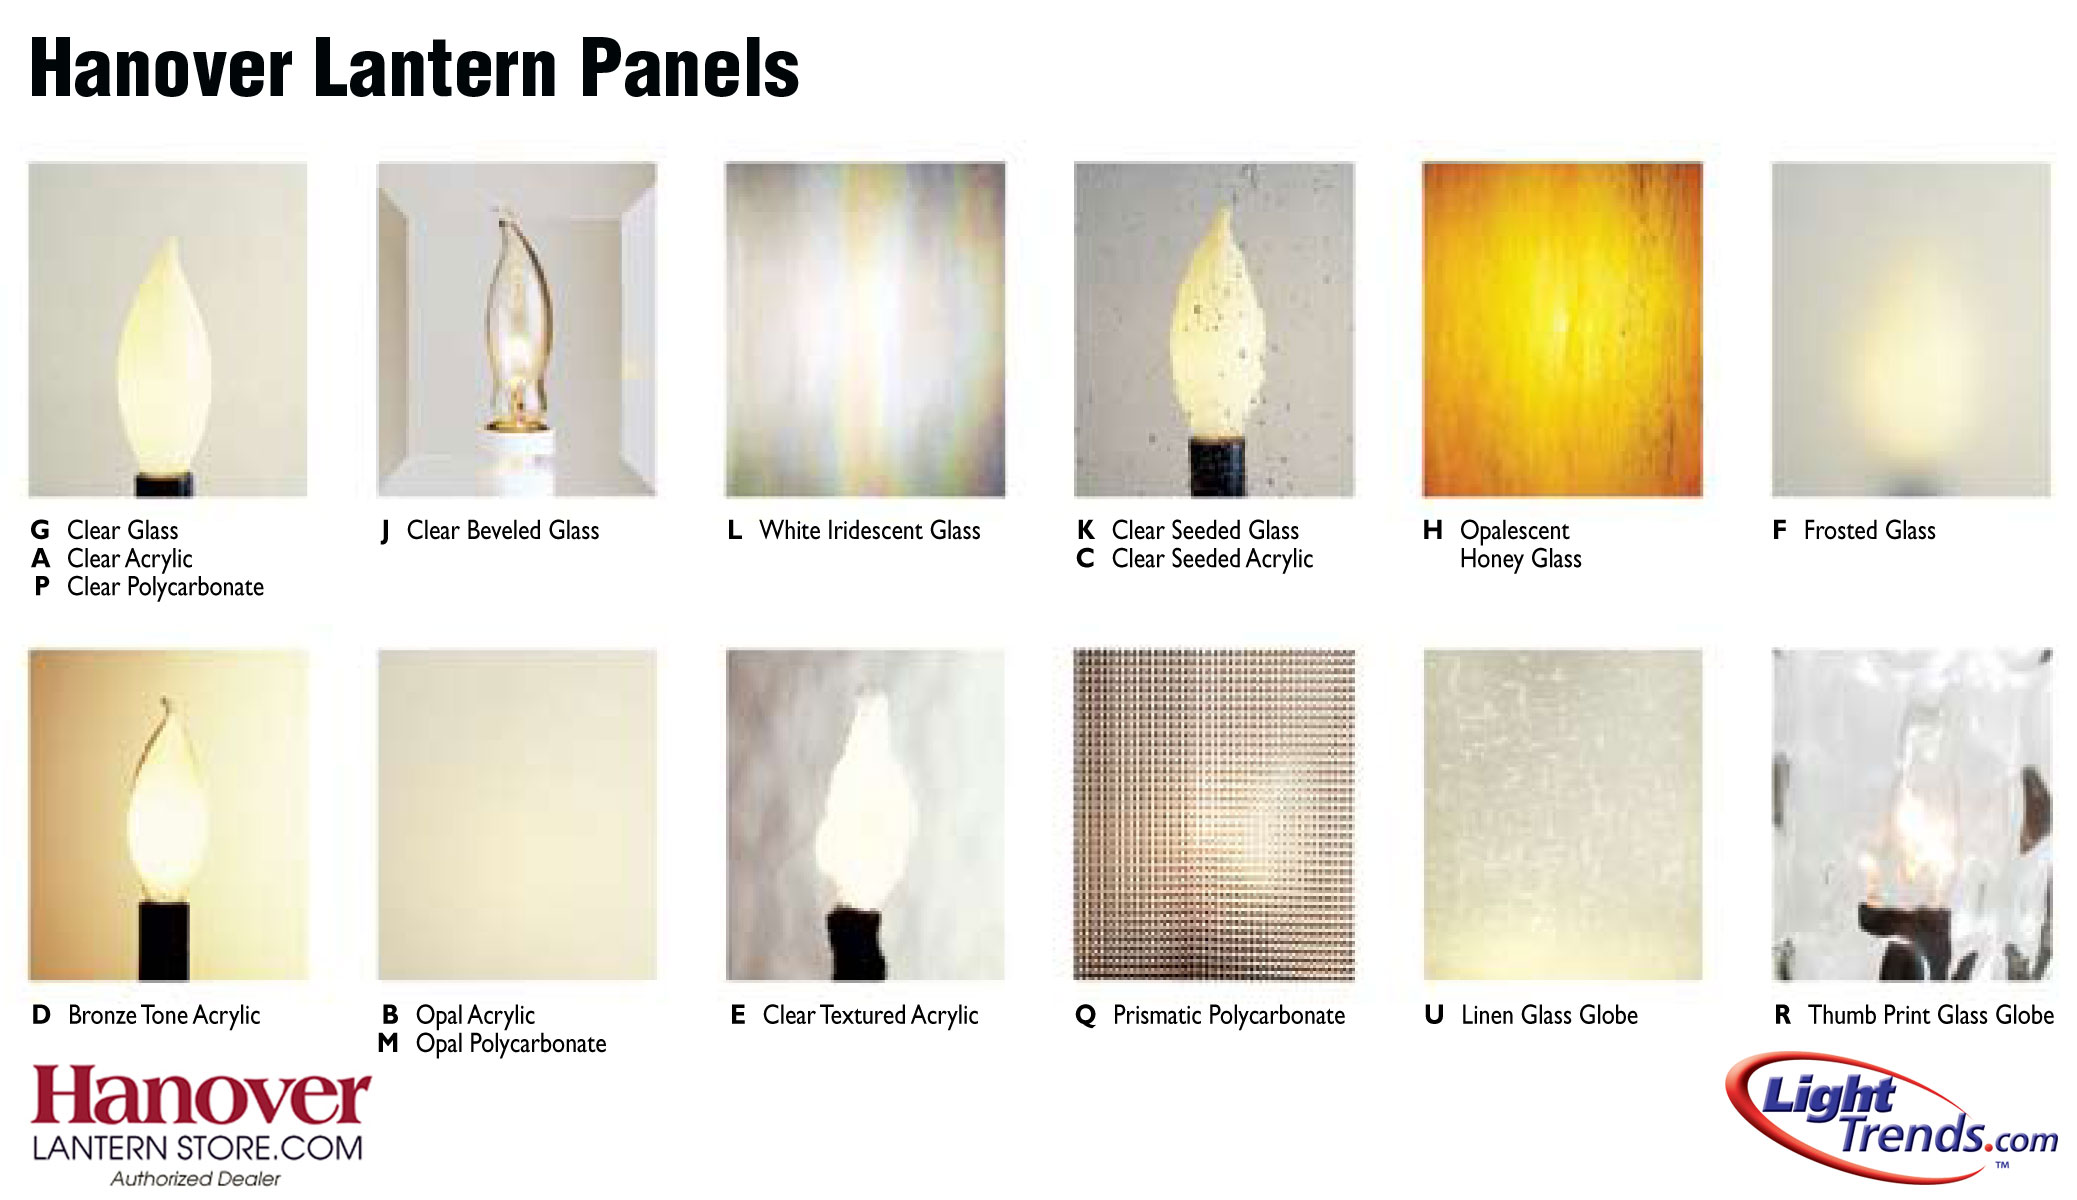 Hanover Lantern Glass Panel Options